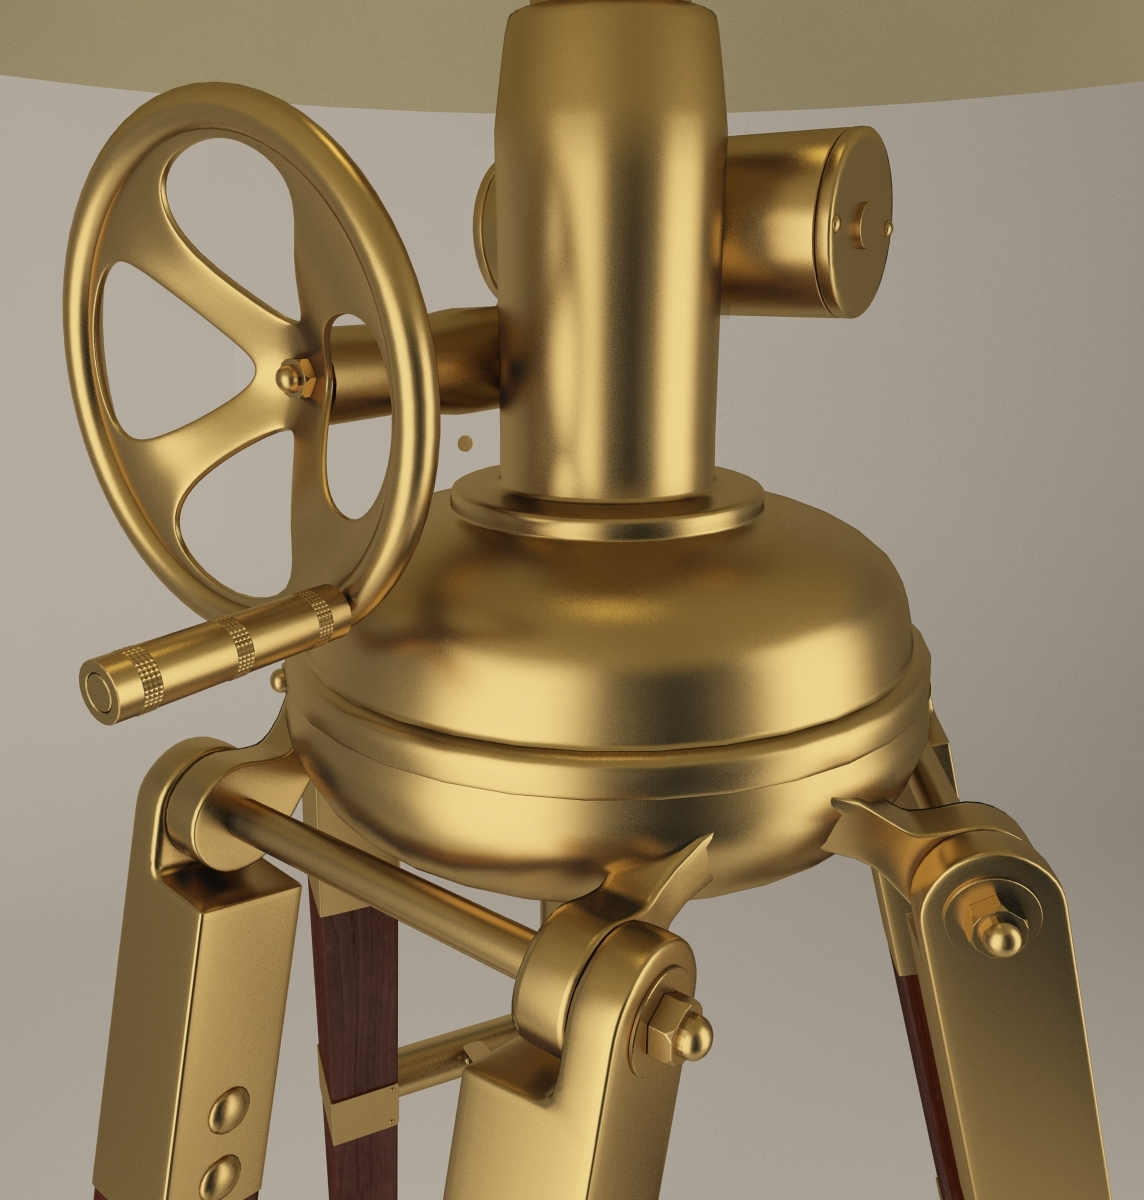 Royal Marine Tripod Lamp With Materials Amp Textures By